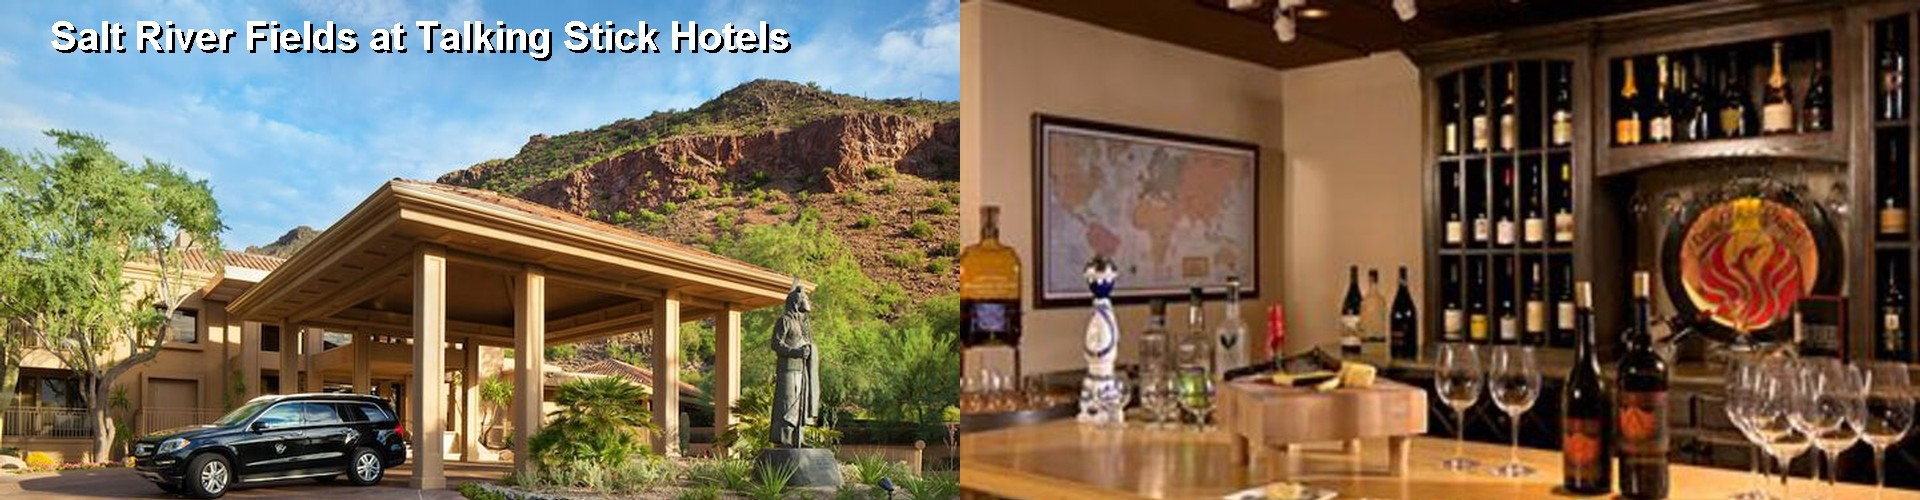 5 Best Hotels near Salt River Fields at Talking Stick